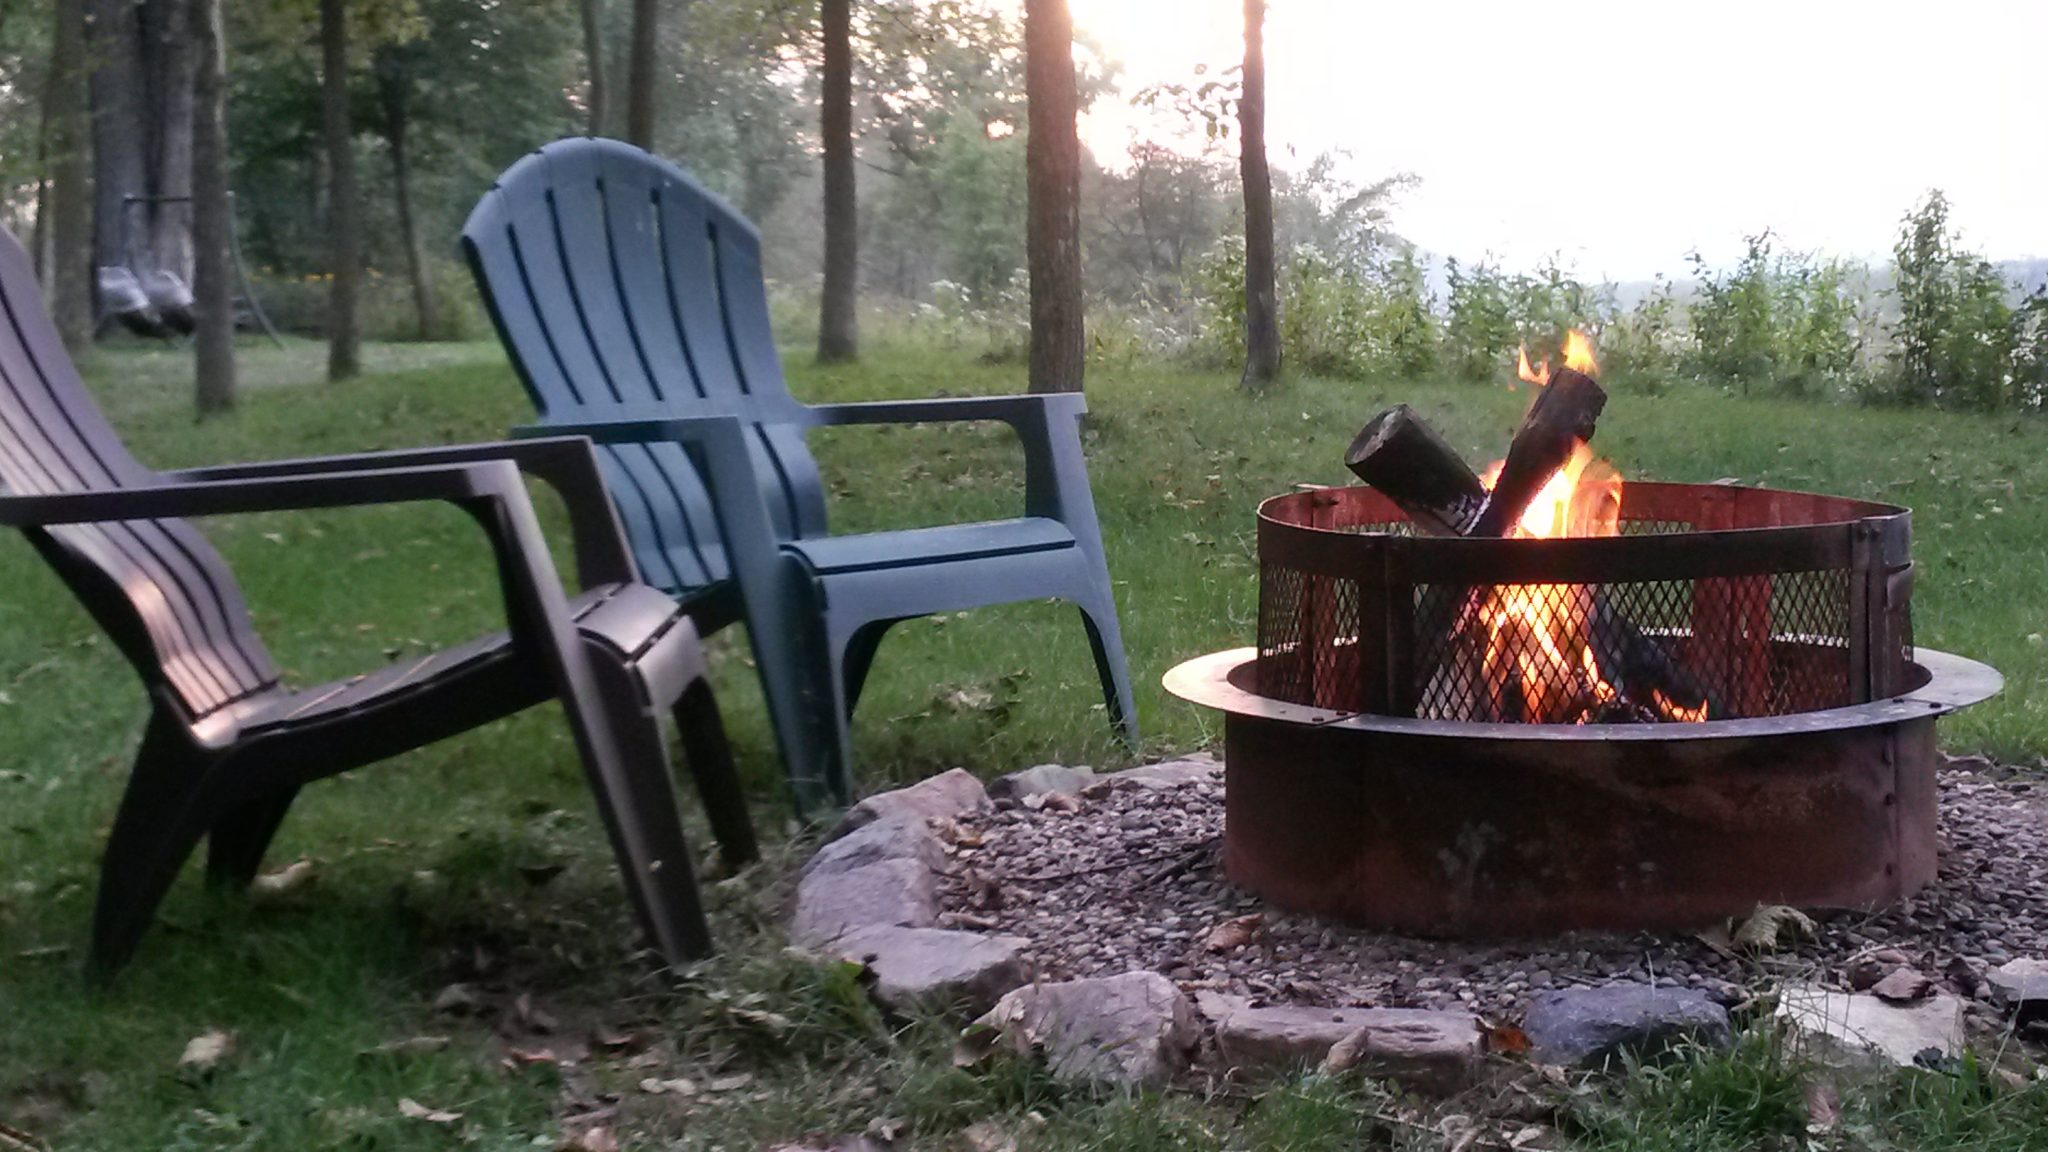 Come sit in the chairs with a fire along the Wisconsin River